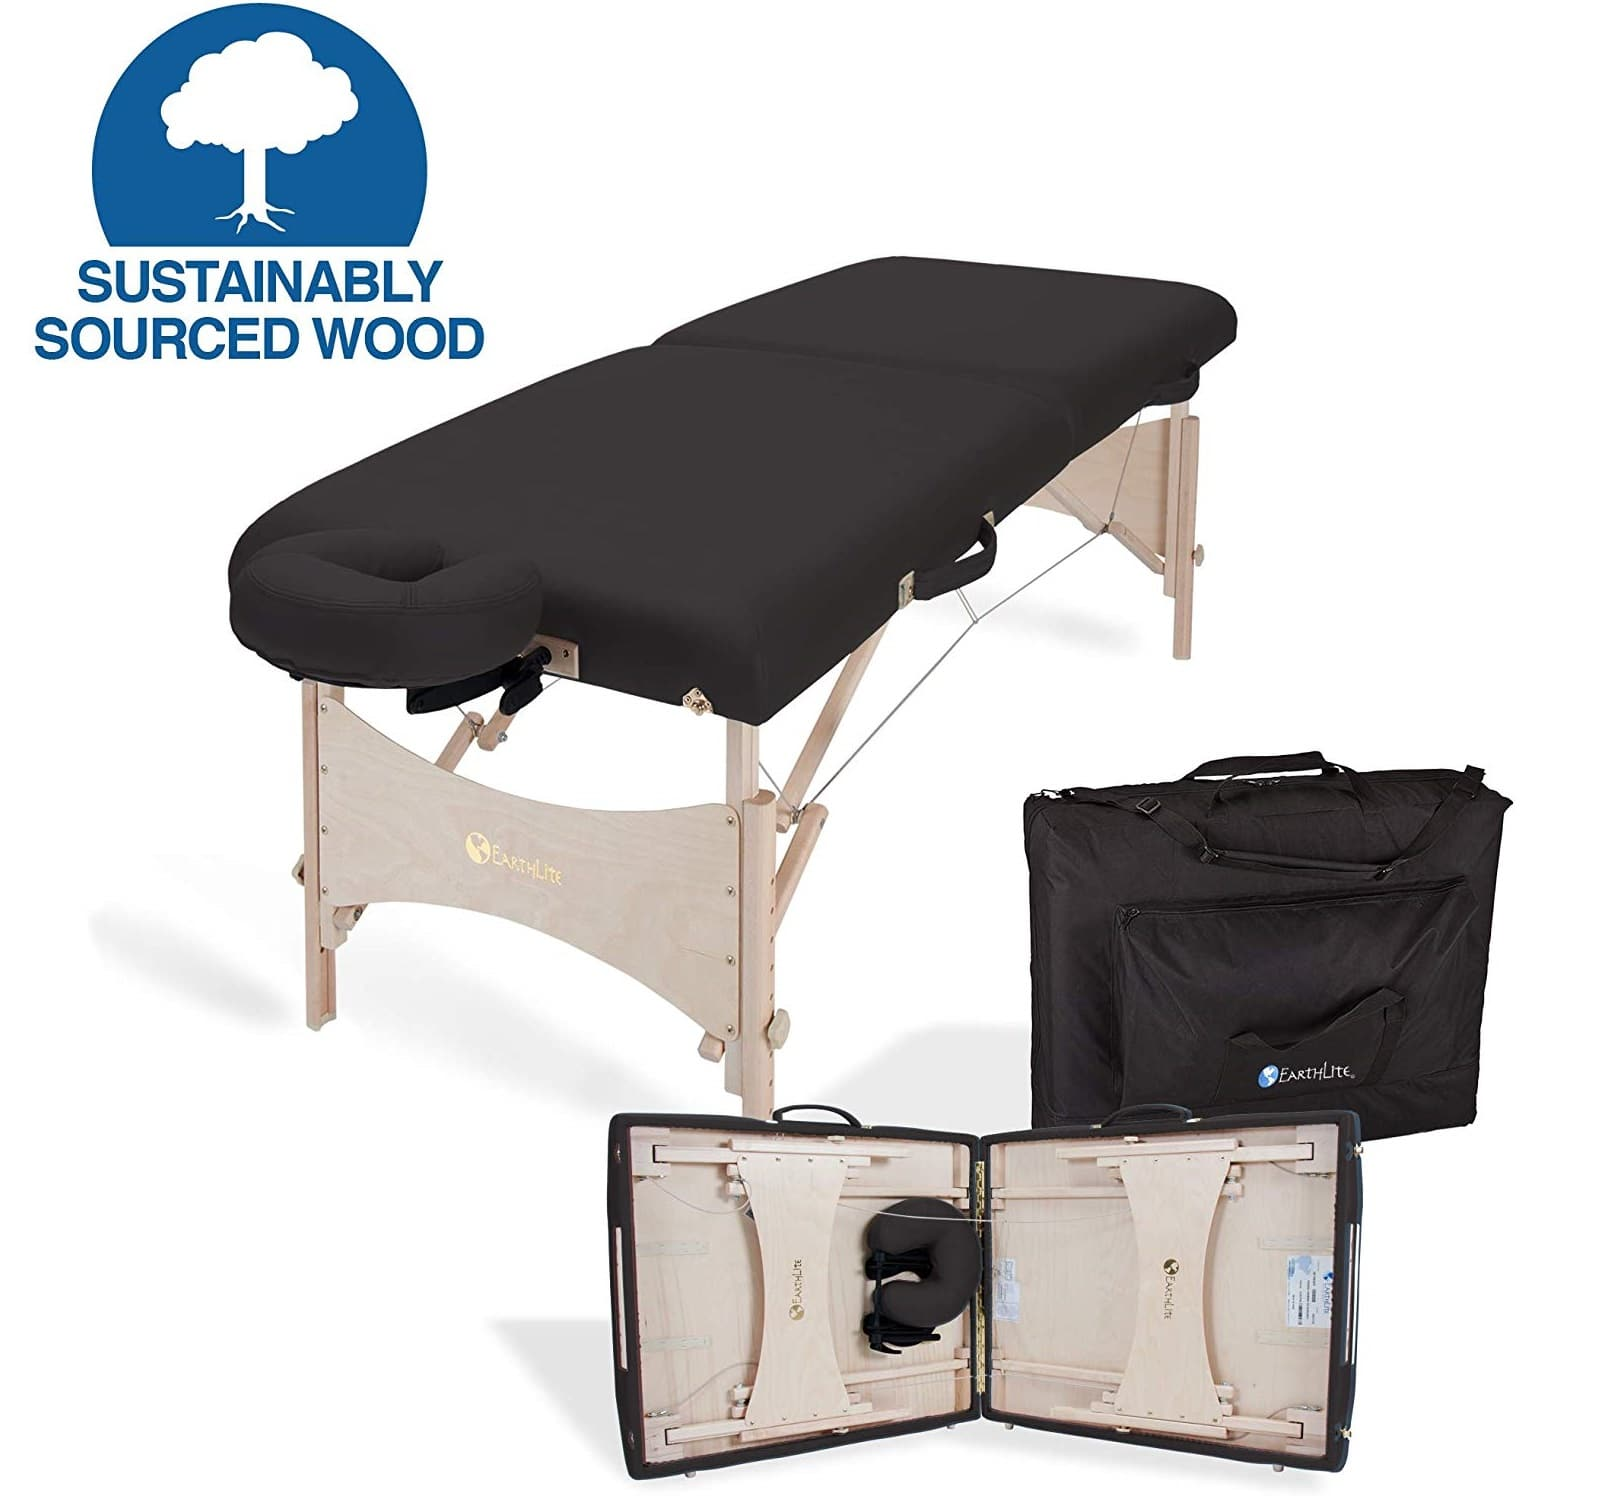 1.EARTHLITE Portable Massage Table HARMONY DX – Eco-Friendly Design, Hard Maple, Superior Comfort, Deluxe Adjustable Face Cradle